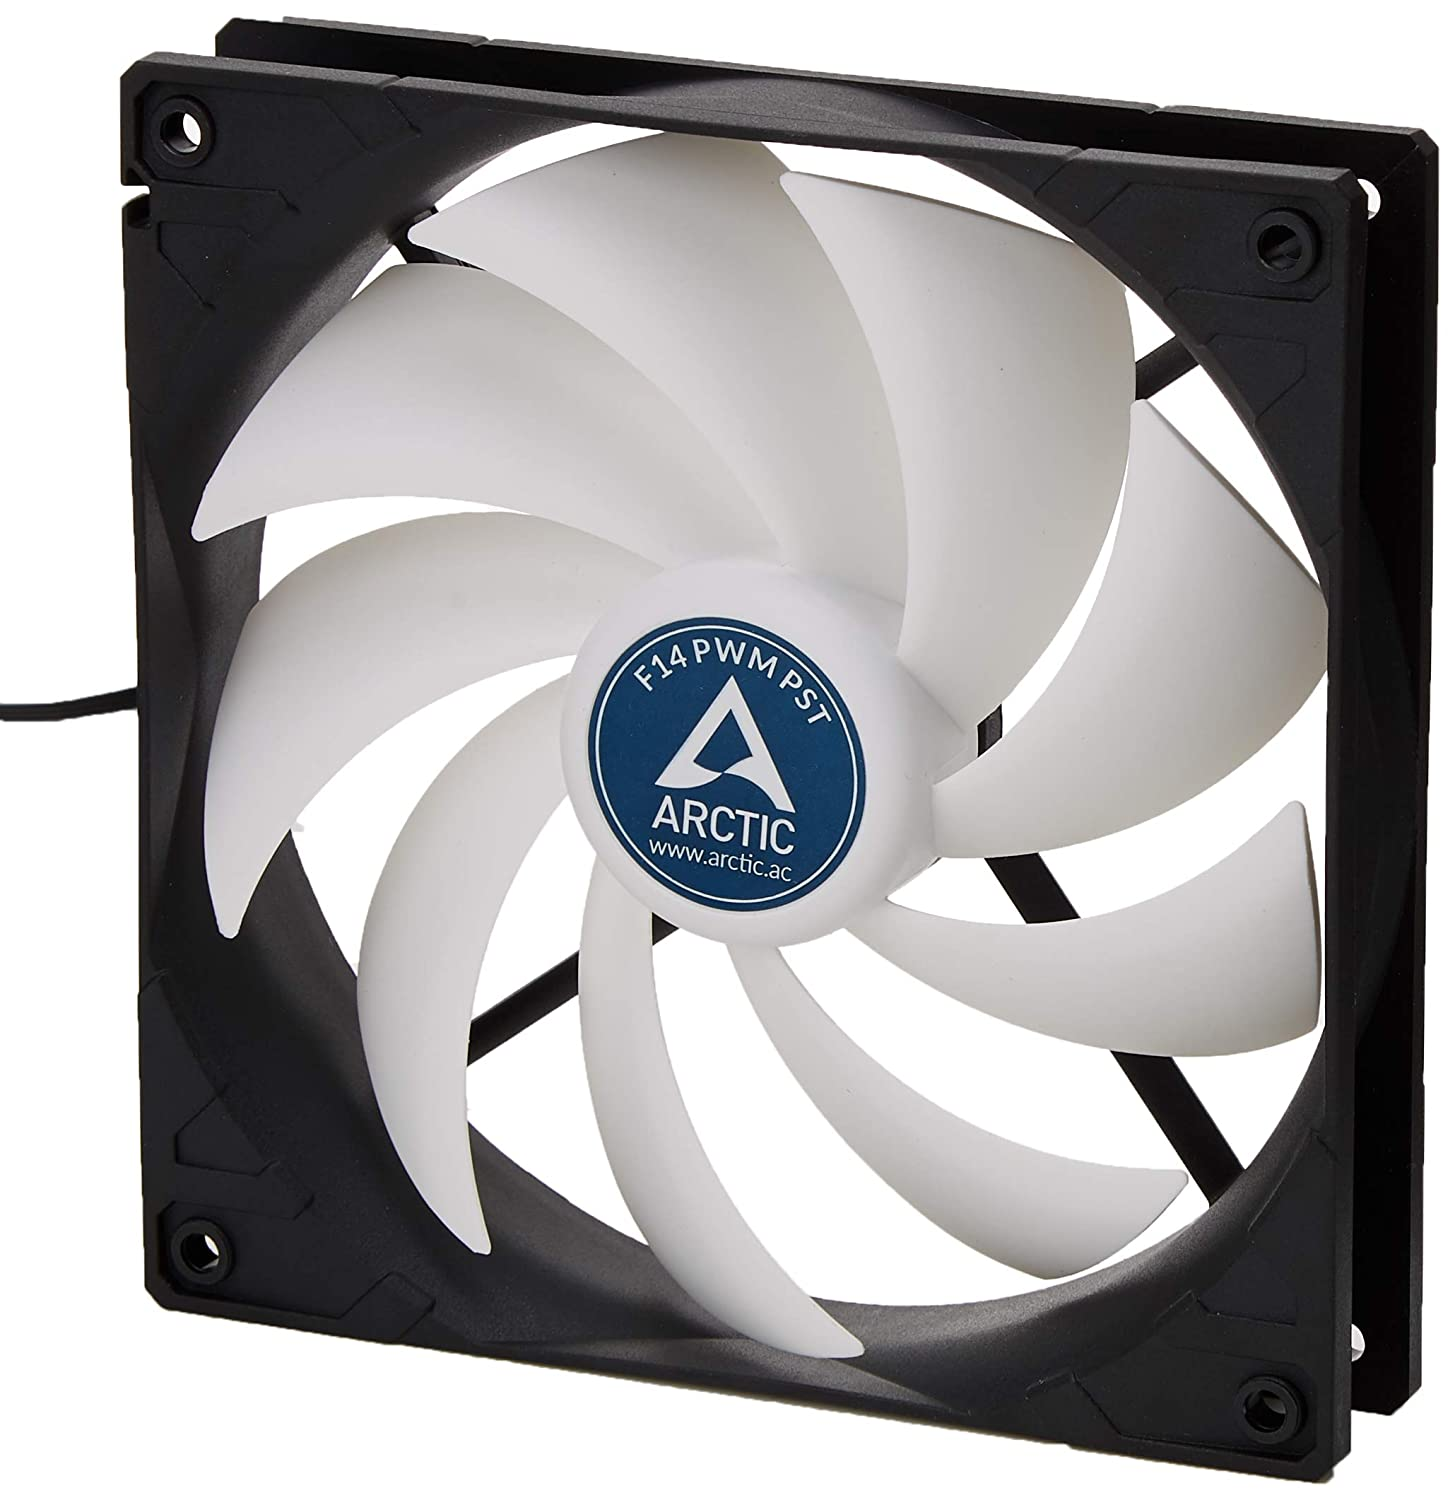 ARCTIC F14 PWM PST - 140 mm PWM PST Case Fan | Silent Cooler with Standard  Case | PST-Port (PWM Sharing Technology) | Regulates RPM in sync